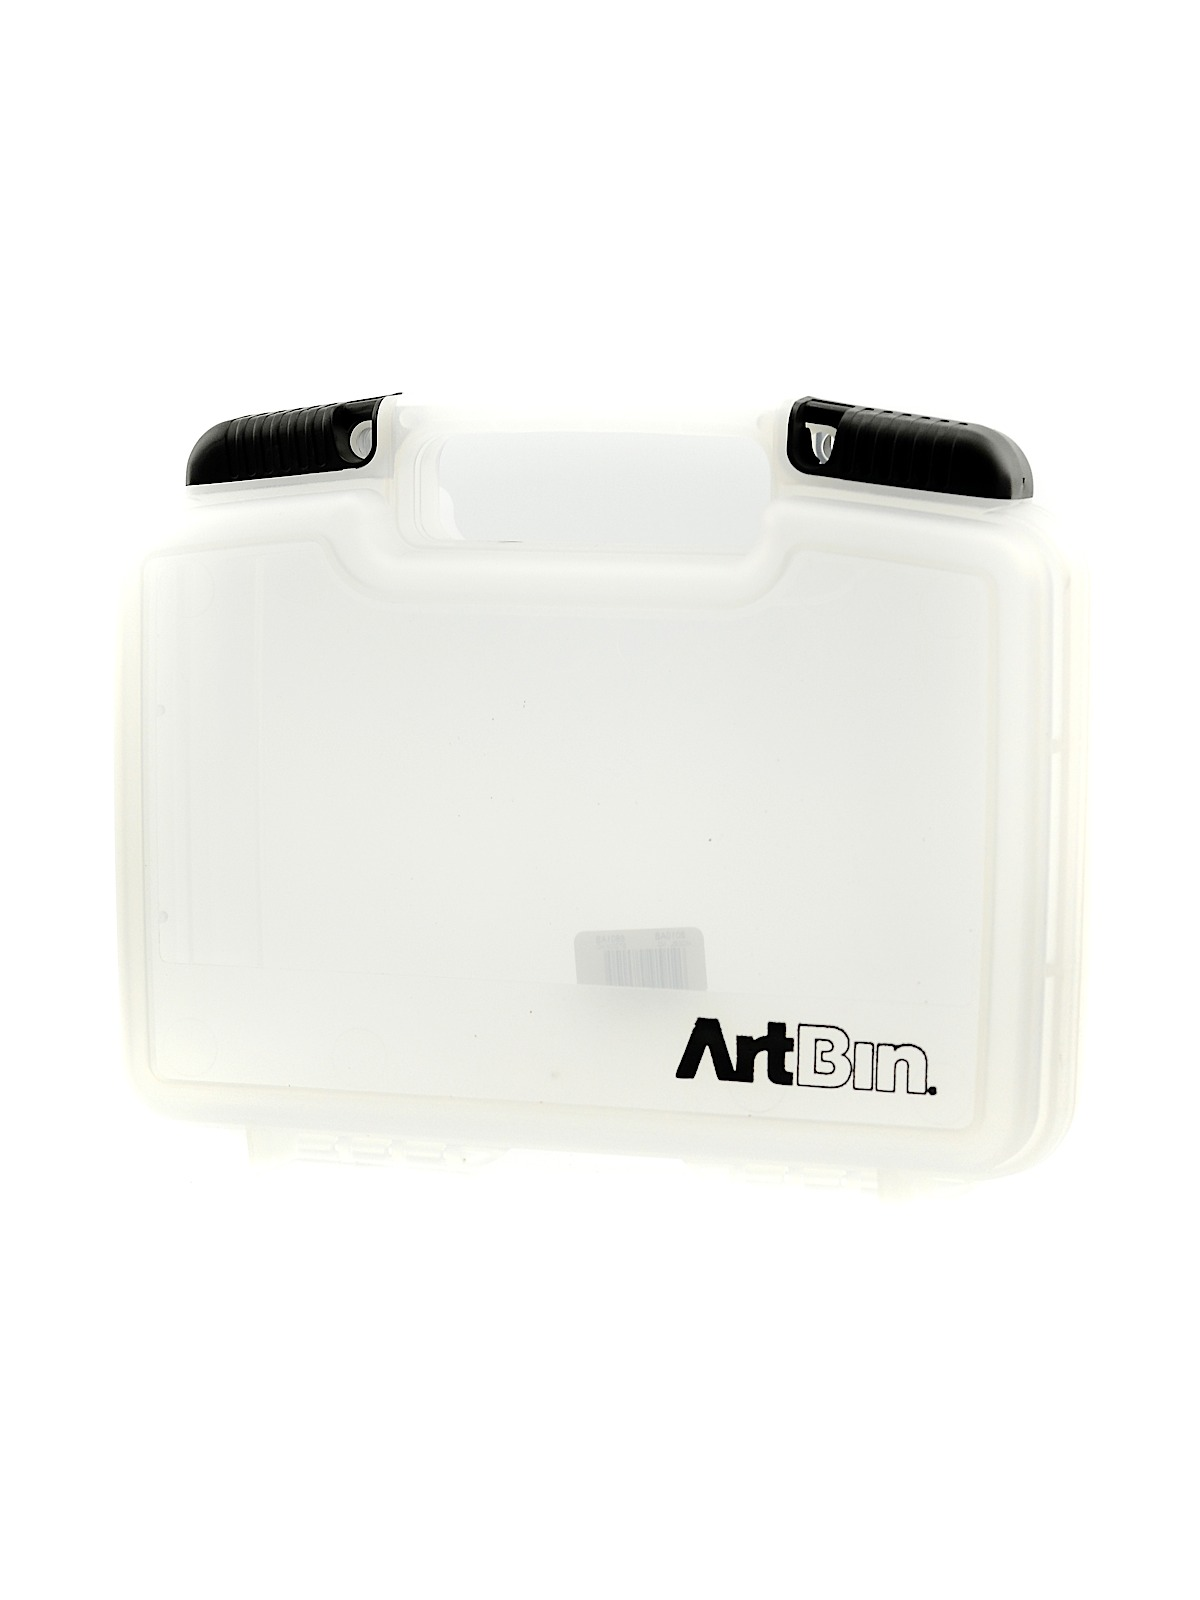 Quick View Carrying Cases 10 1 2 In. X 3 1 8 In. X 8 3 8 In.